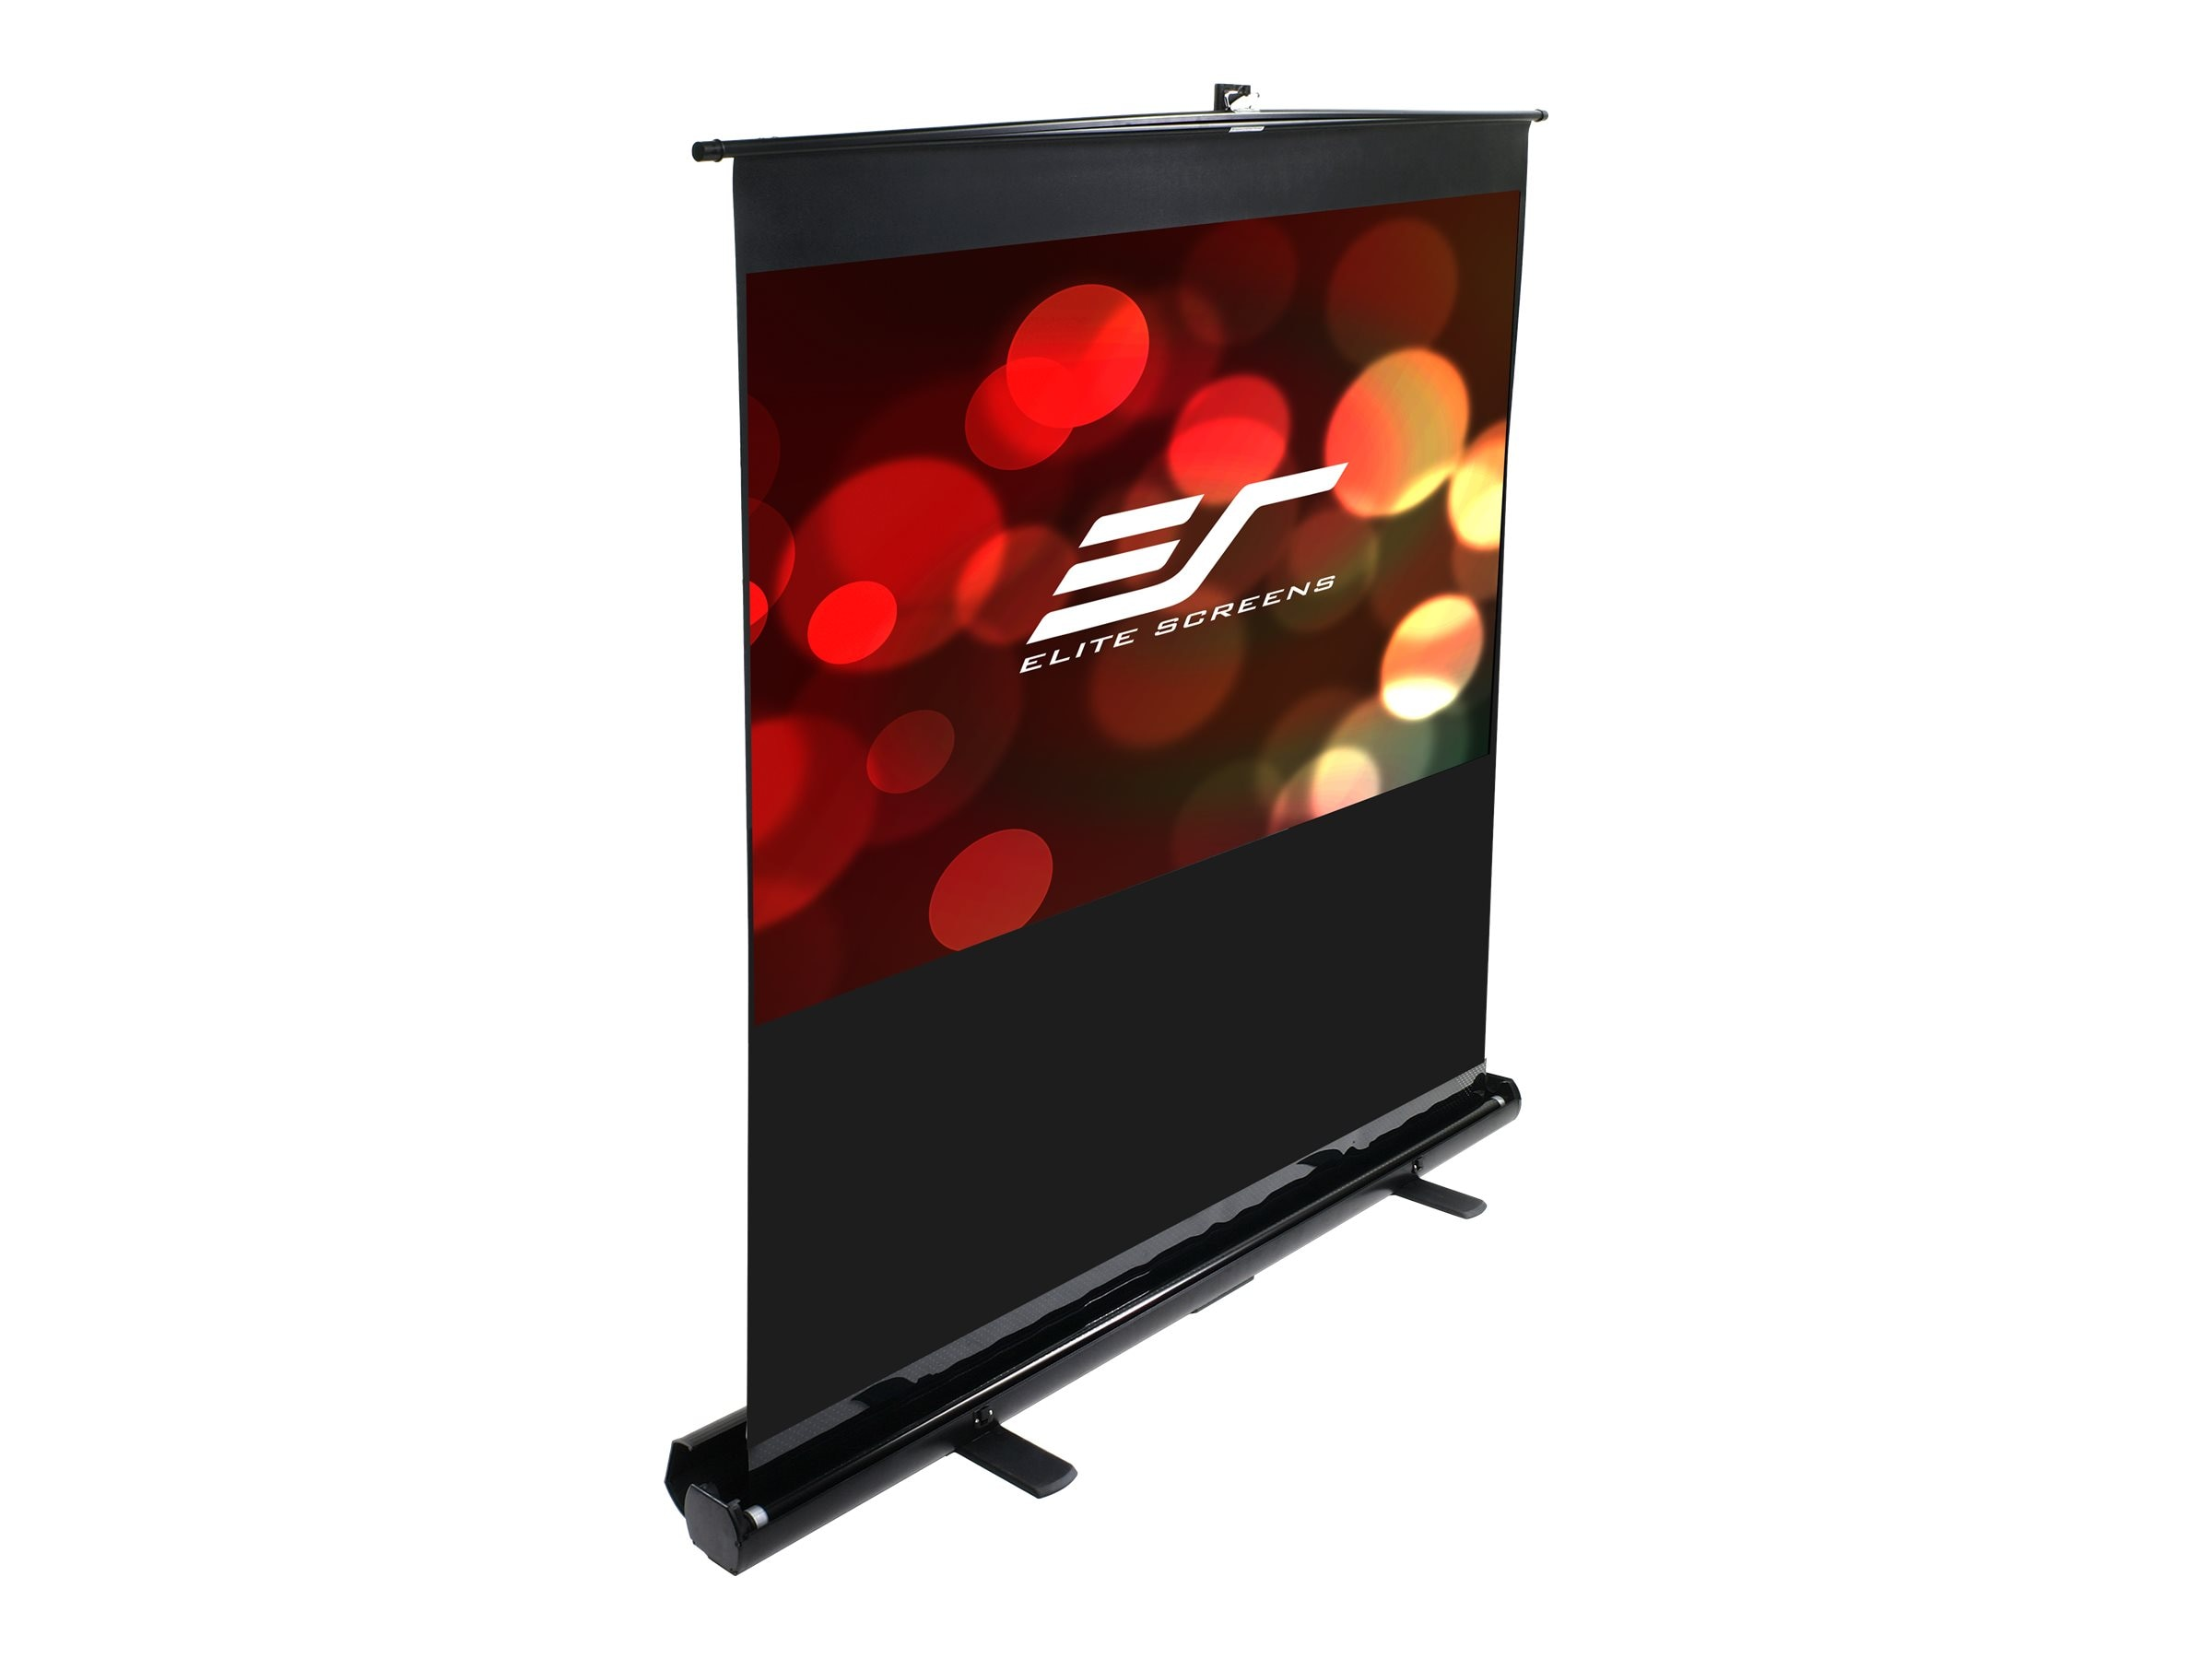 Elite Ez-Cinema Series Matte White Portable Projection Screen, 4:3, 60in, F60NWV, 6298637, Projector Screens